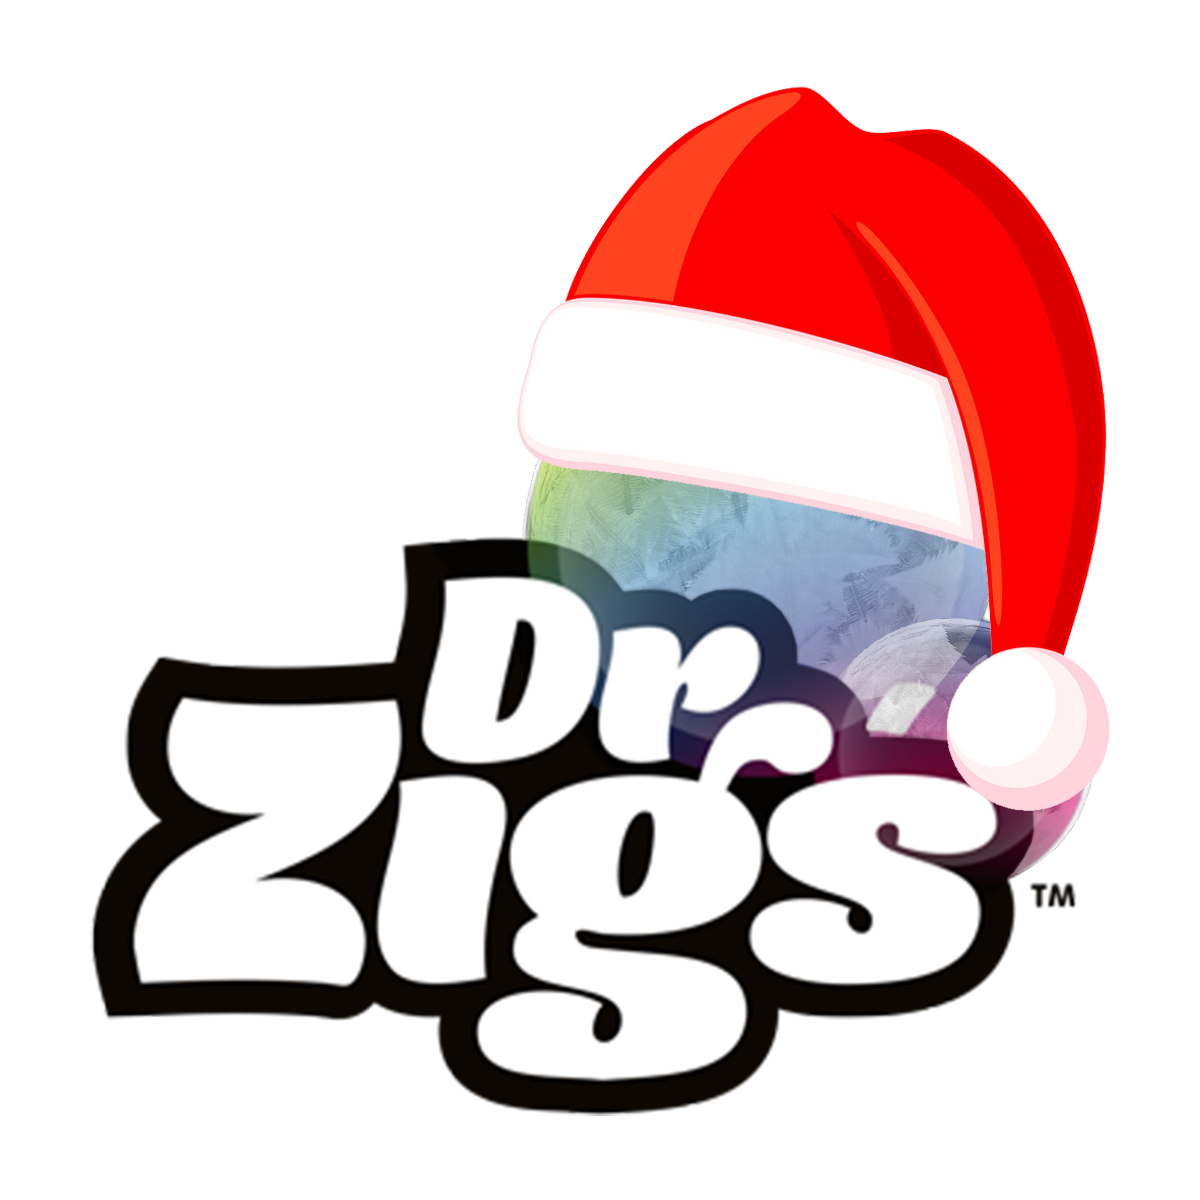 eco ethical giant bubbles dr zigs eco shop toys for children kids games vegan cruelty free plastic free eco toys christmas stocking filler perfect ideas massive bubble soap